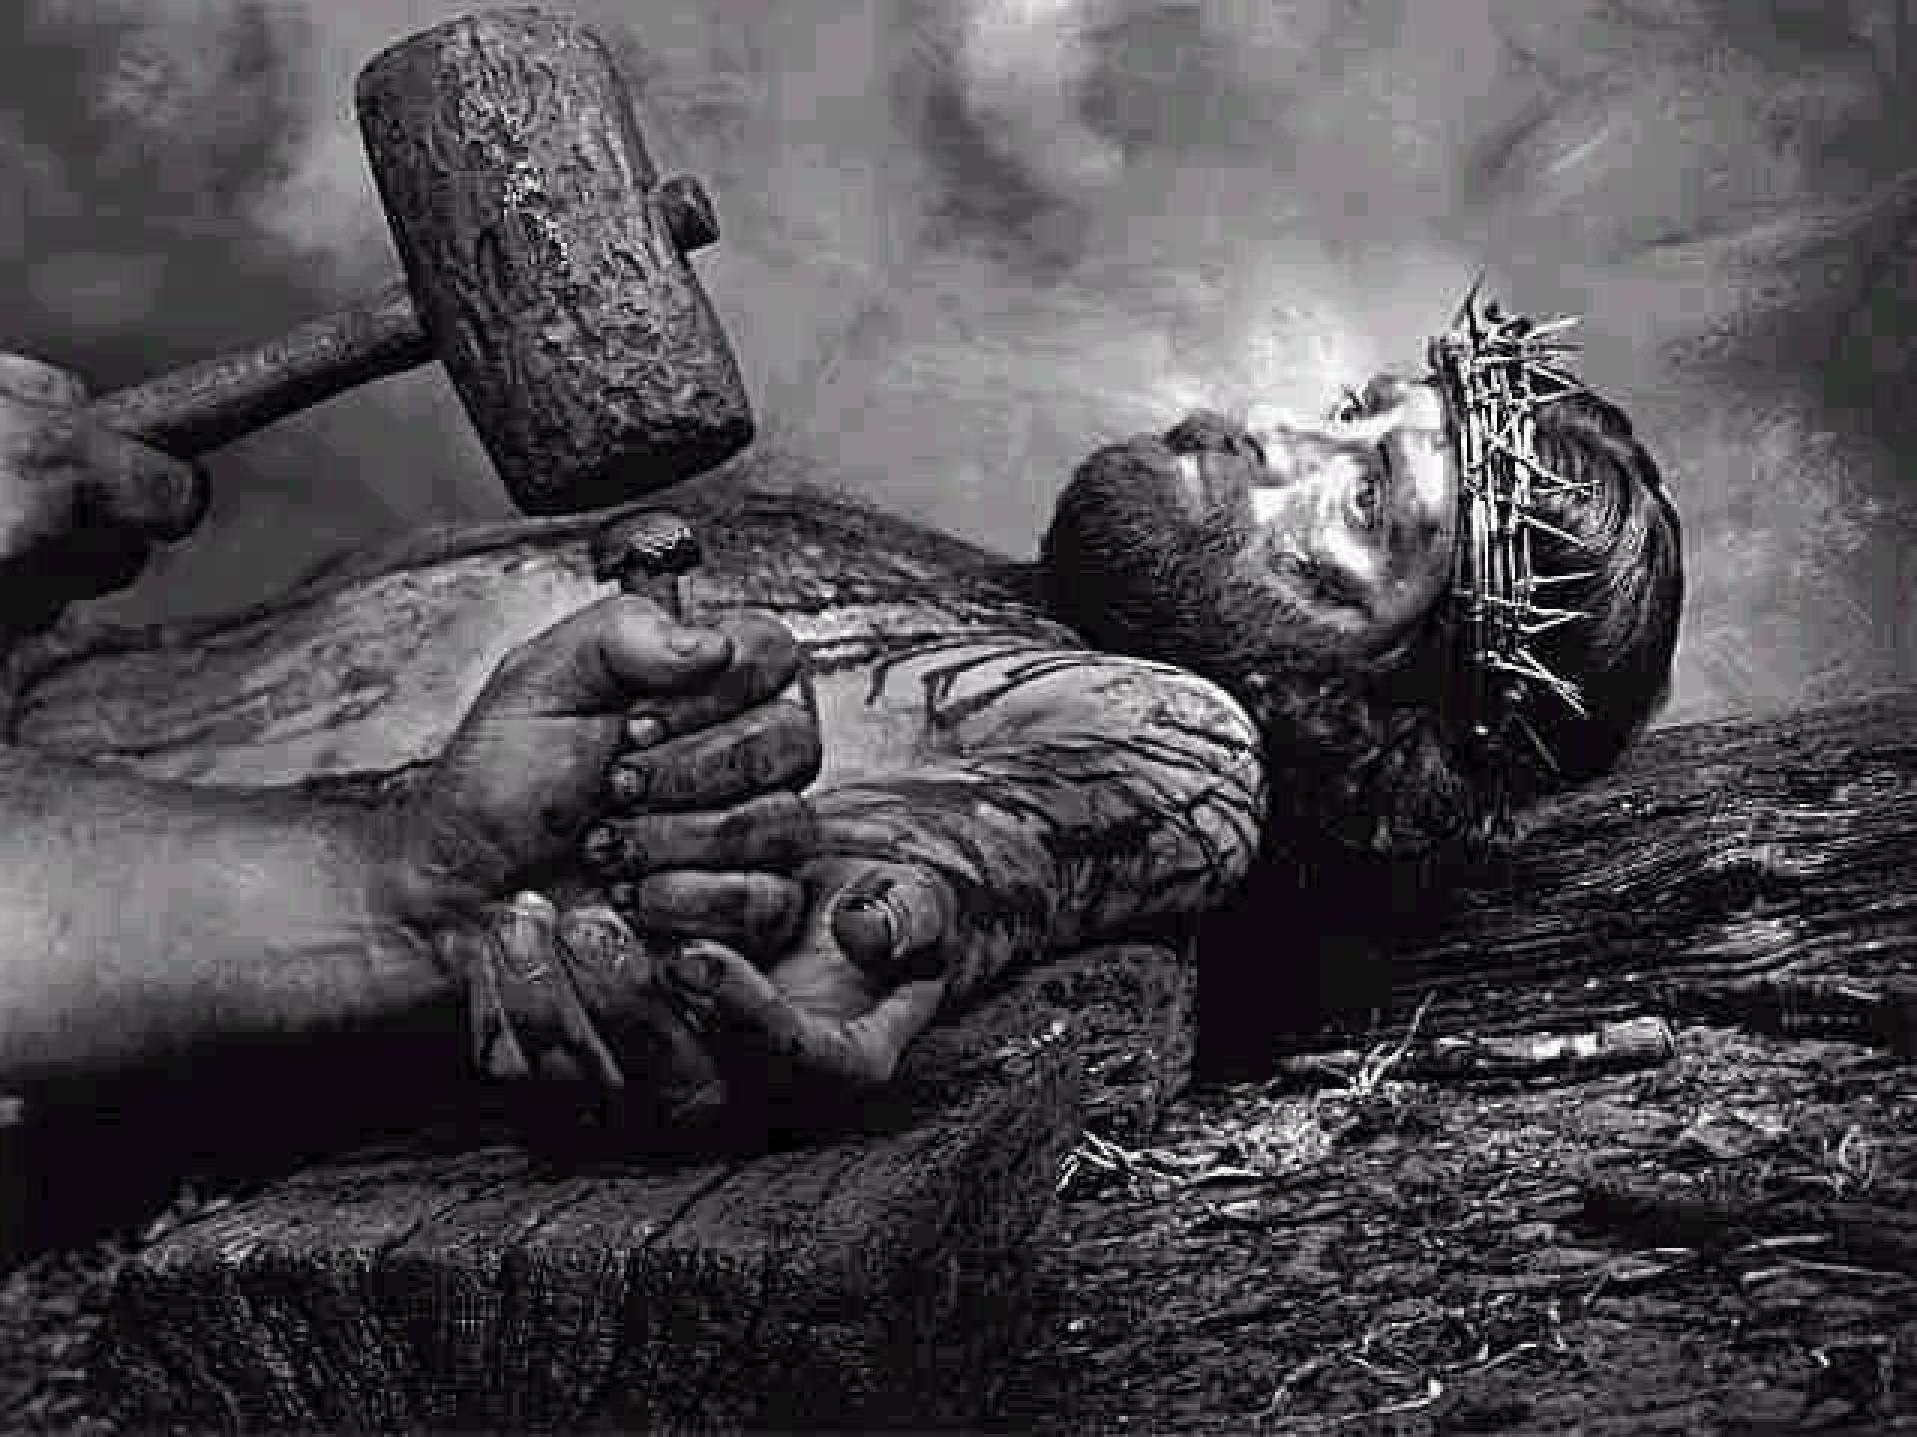 stations of the cross held by his pierced handsheld by his